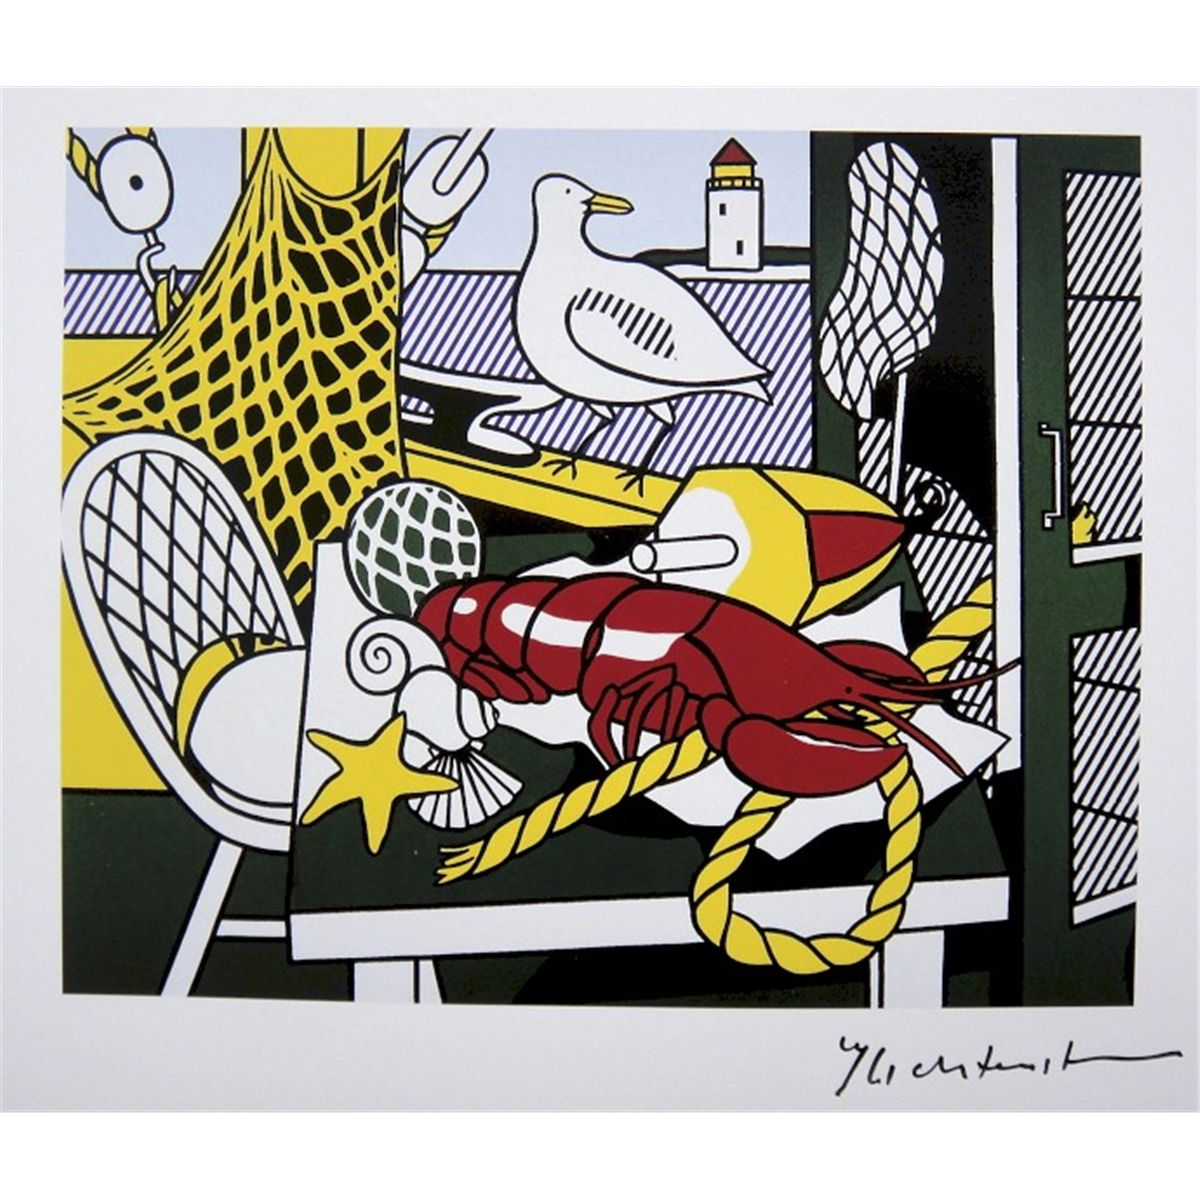 1000 images about roy lichtenstein on pinterest - Roy lichtenstein obras ...